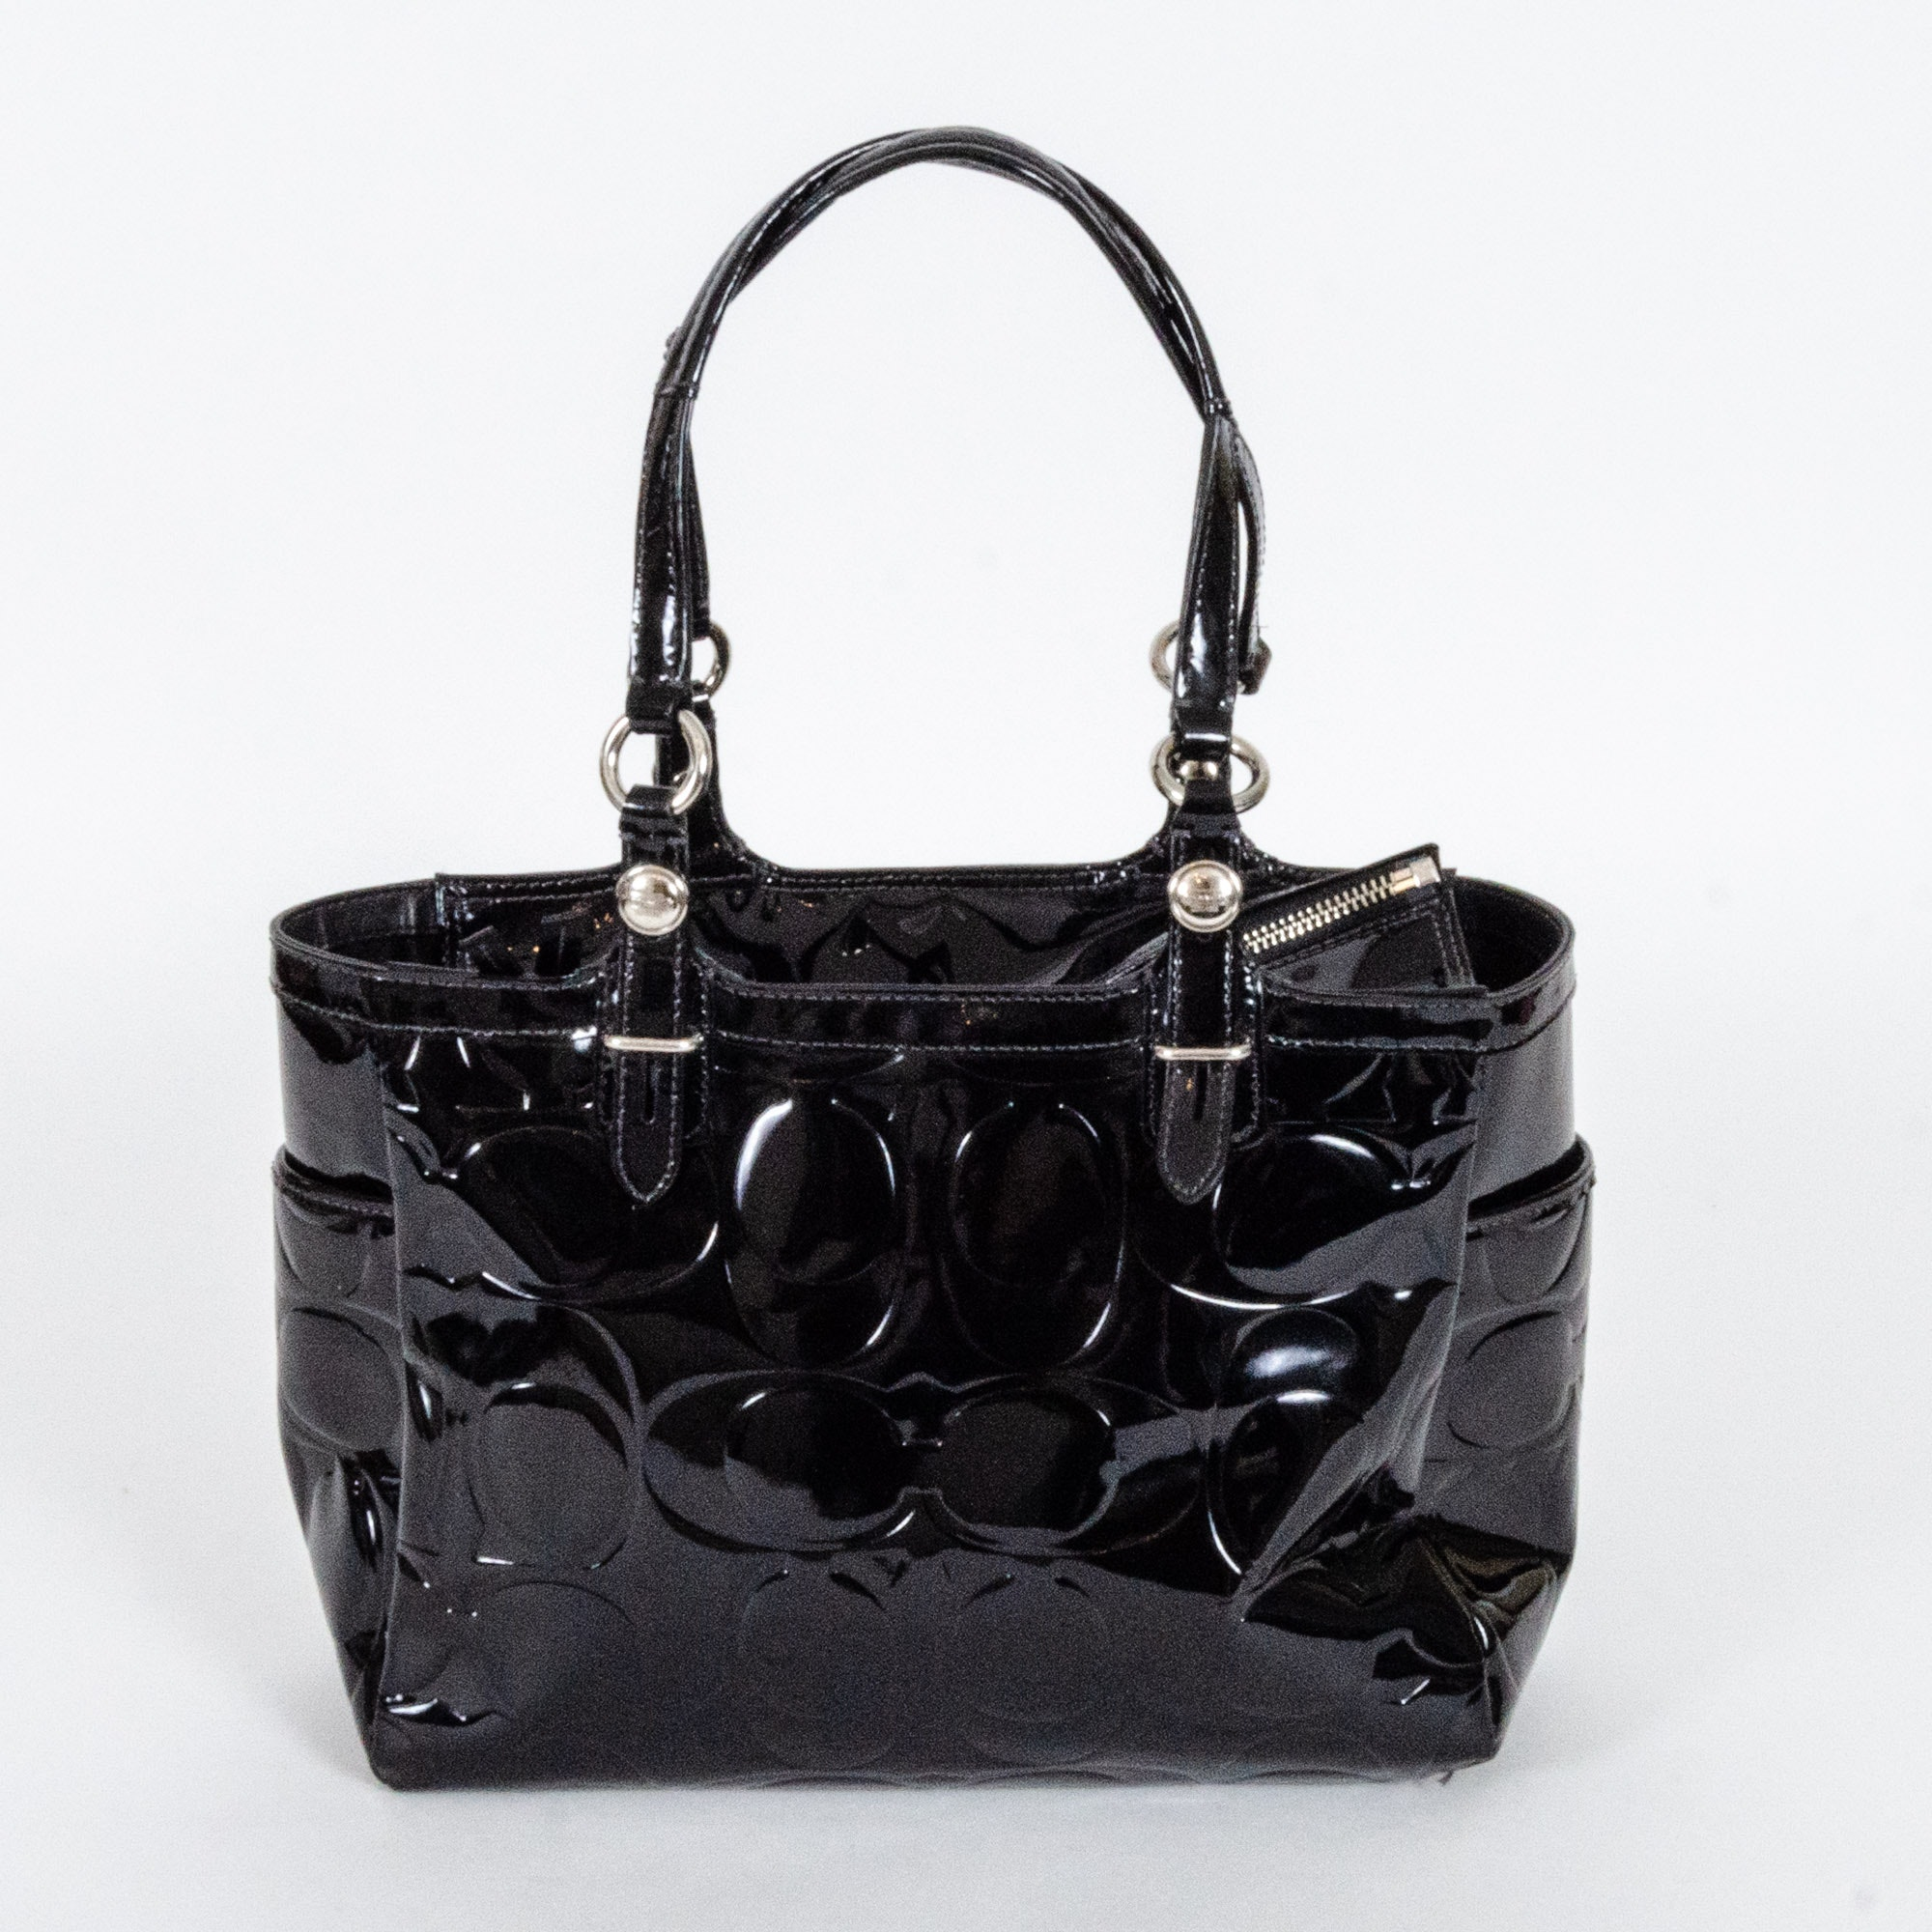 Coach Gallery Embossed Black Patent Leather Handbag